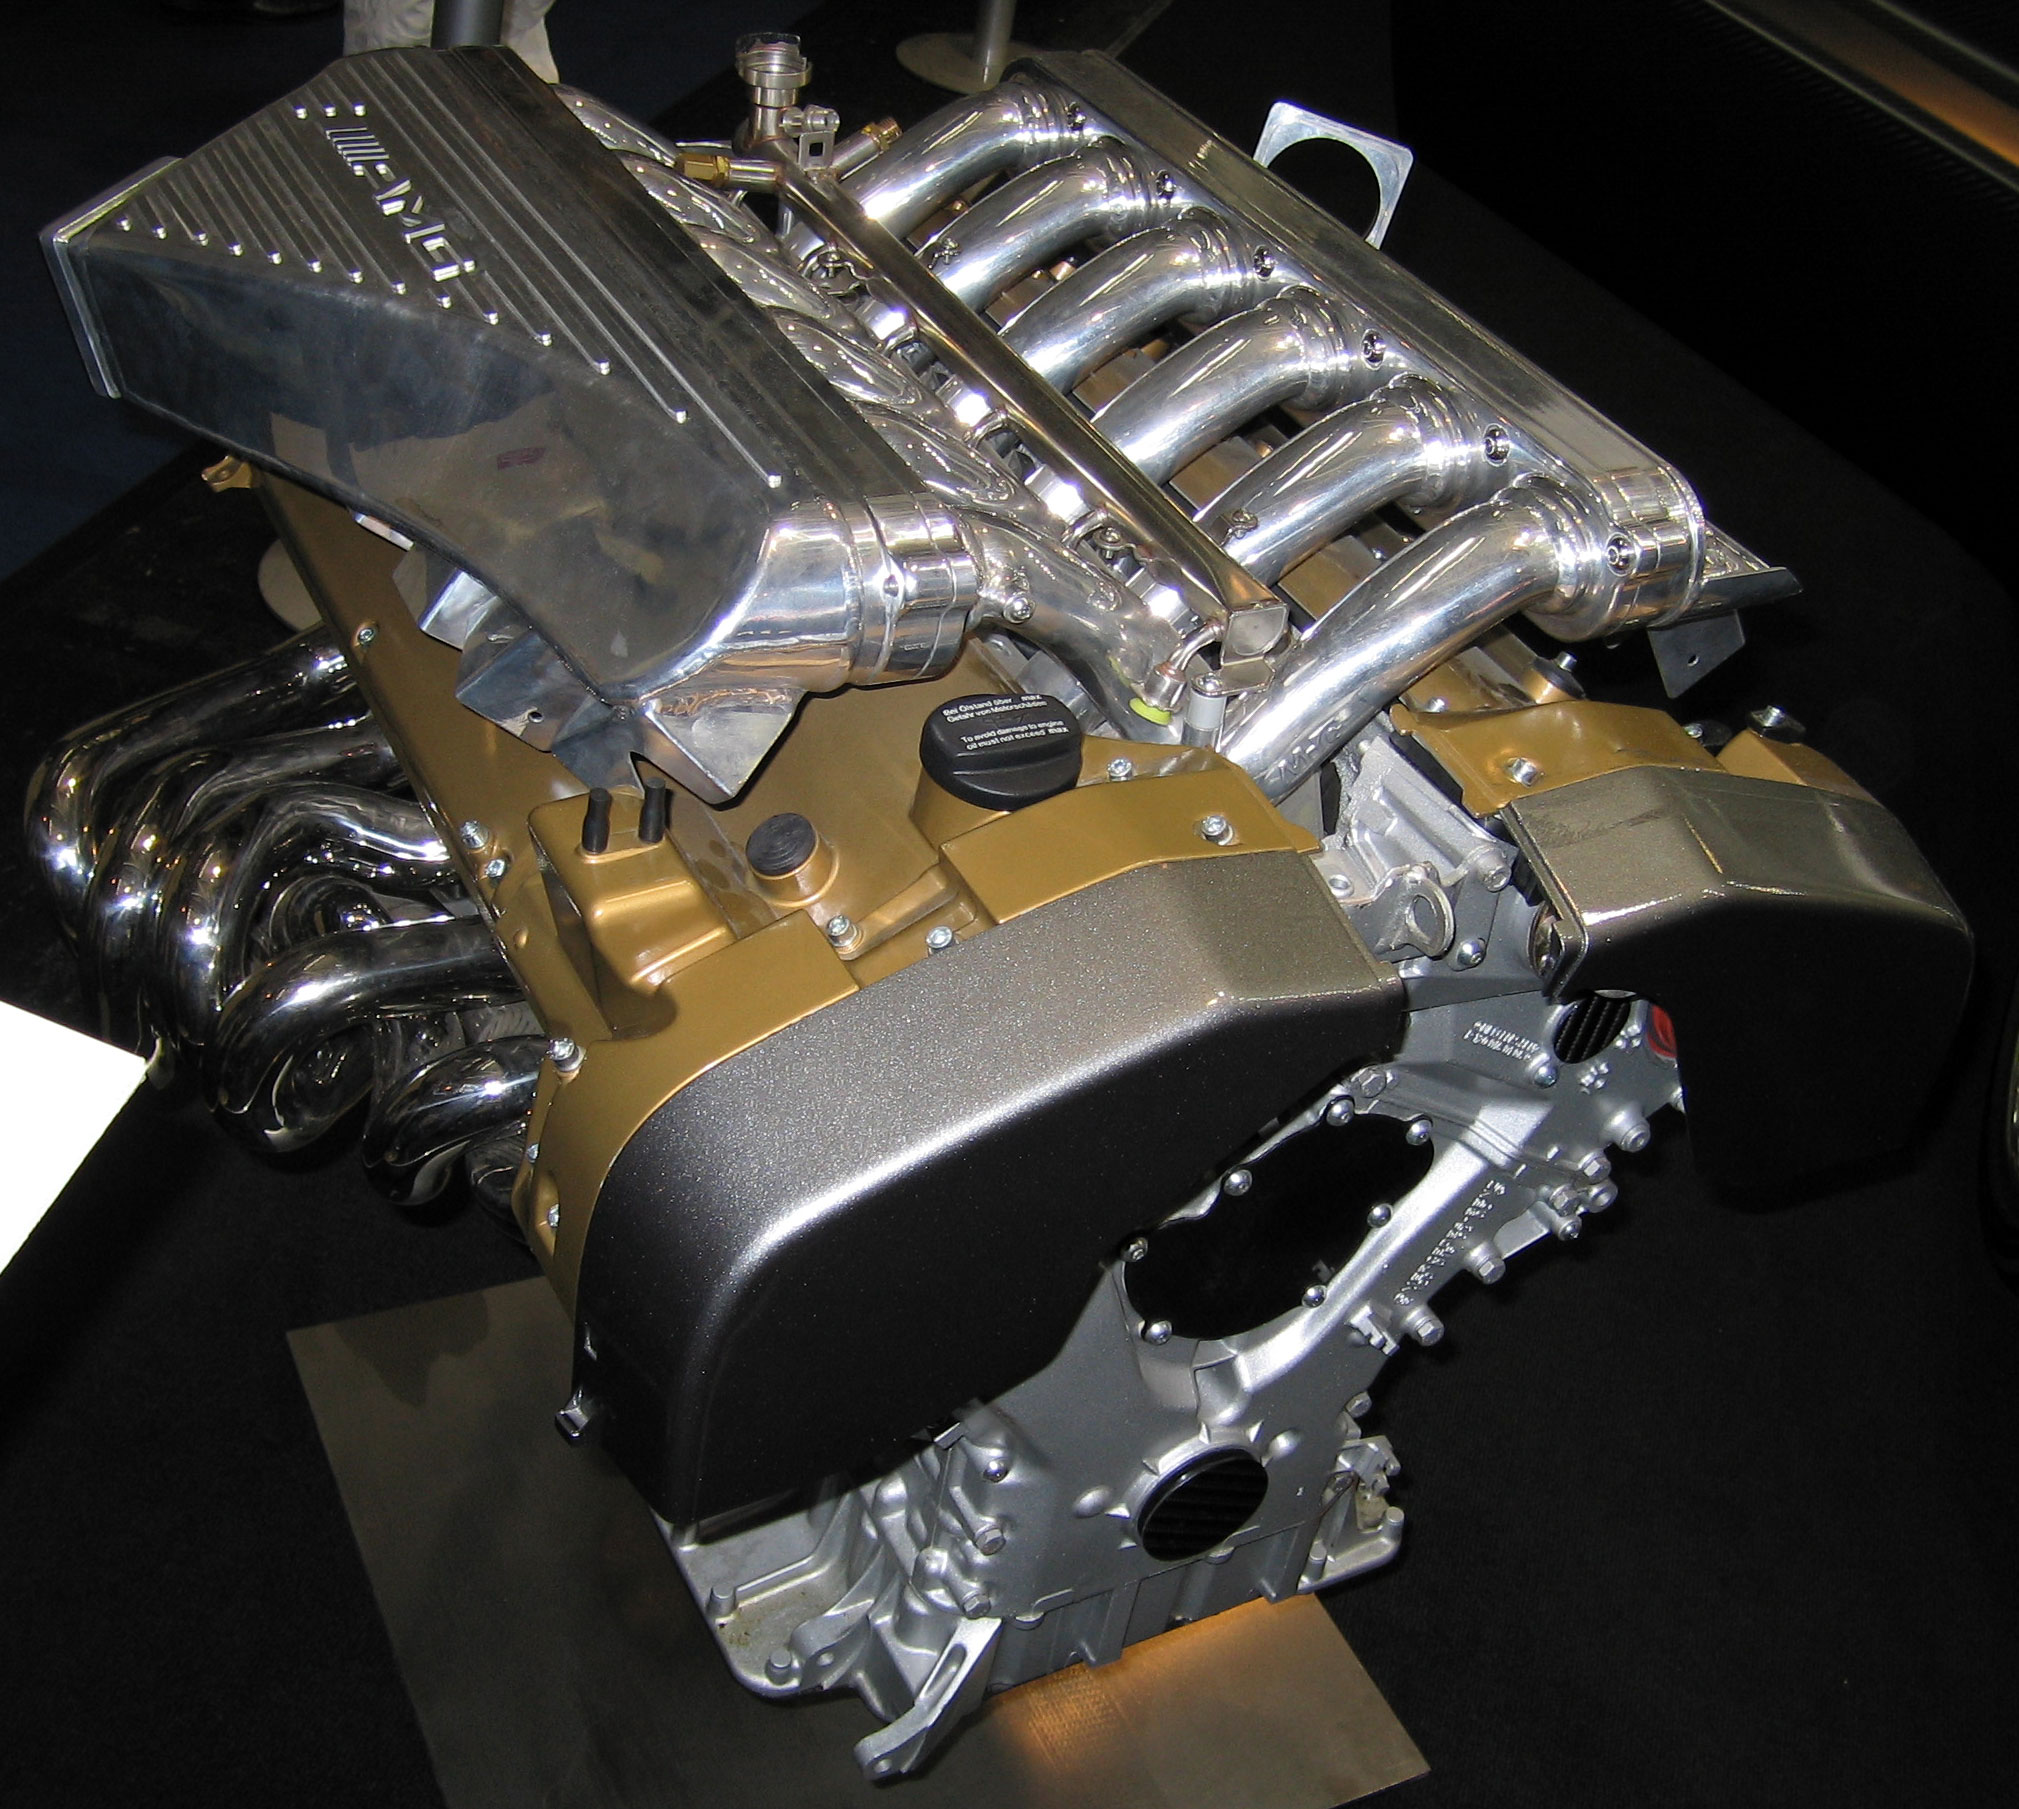 File:Pagani Zonda F engine (AMG V12 7.3l)2.jpg - Wikimedia Commons